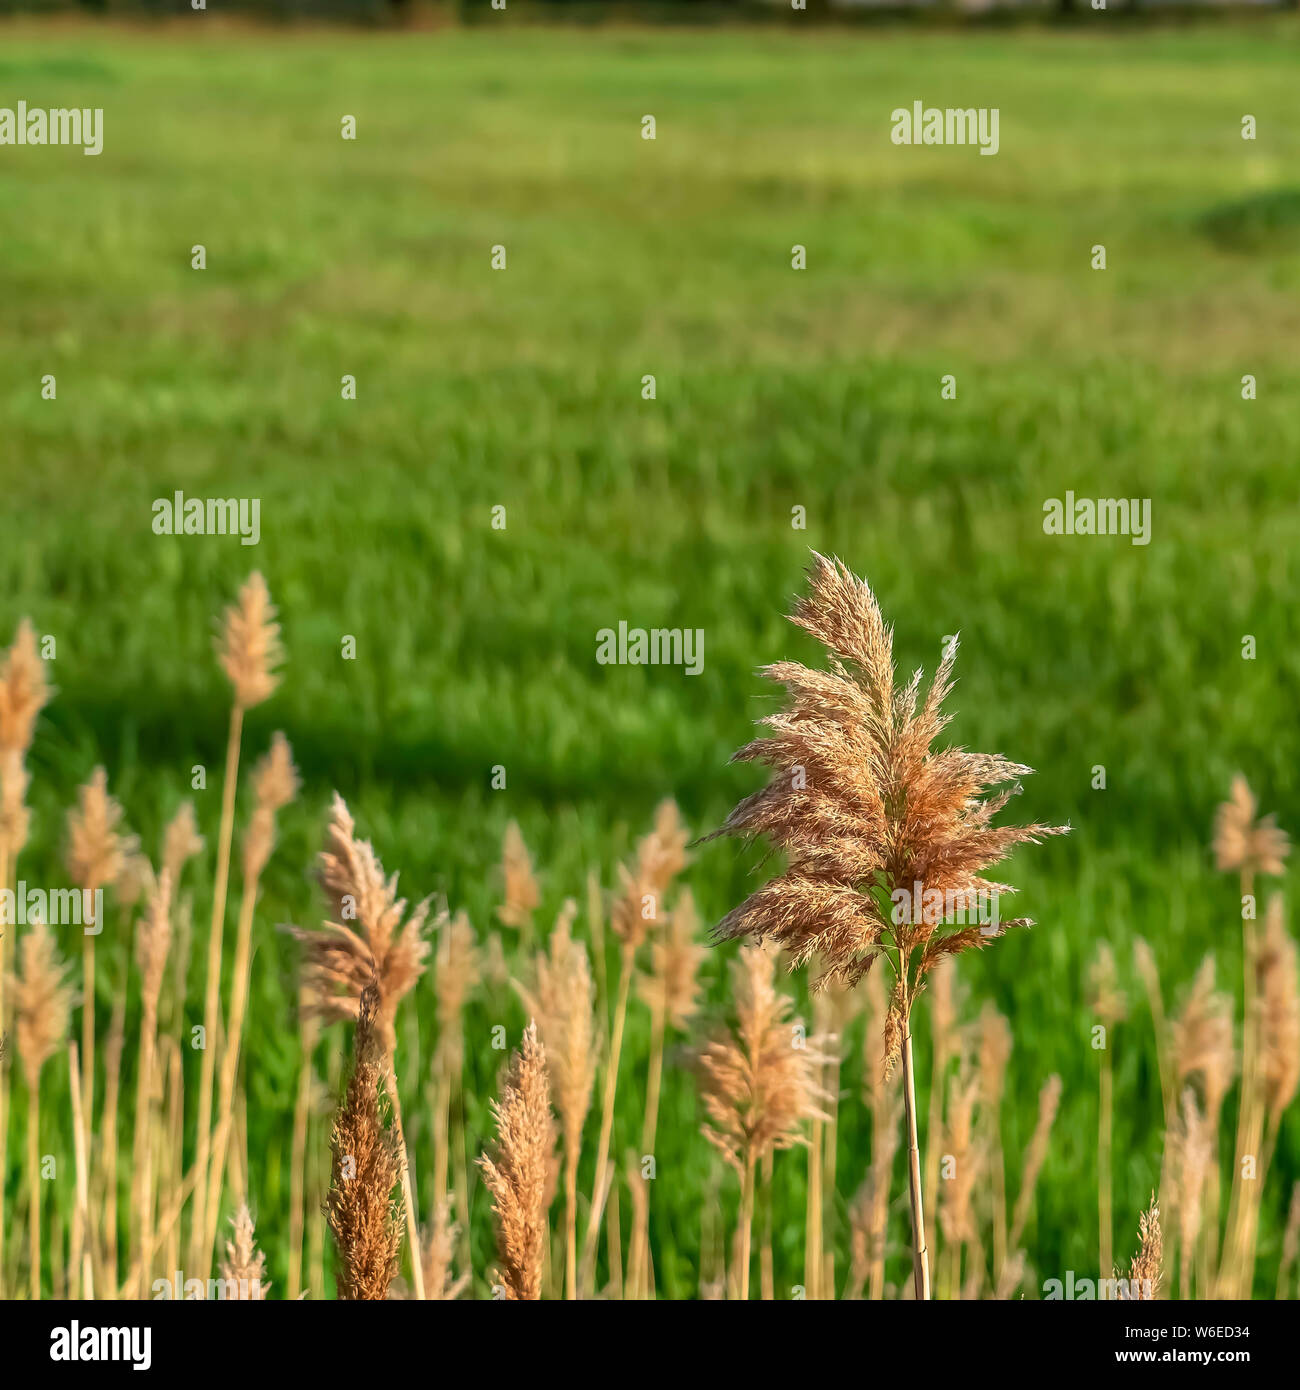 Square frame Close up view of sunlit brown grasses and vivid green field on a sunny day Stock Photo